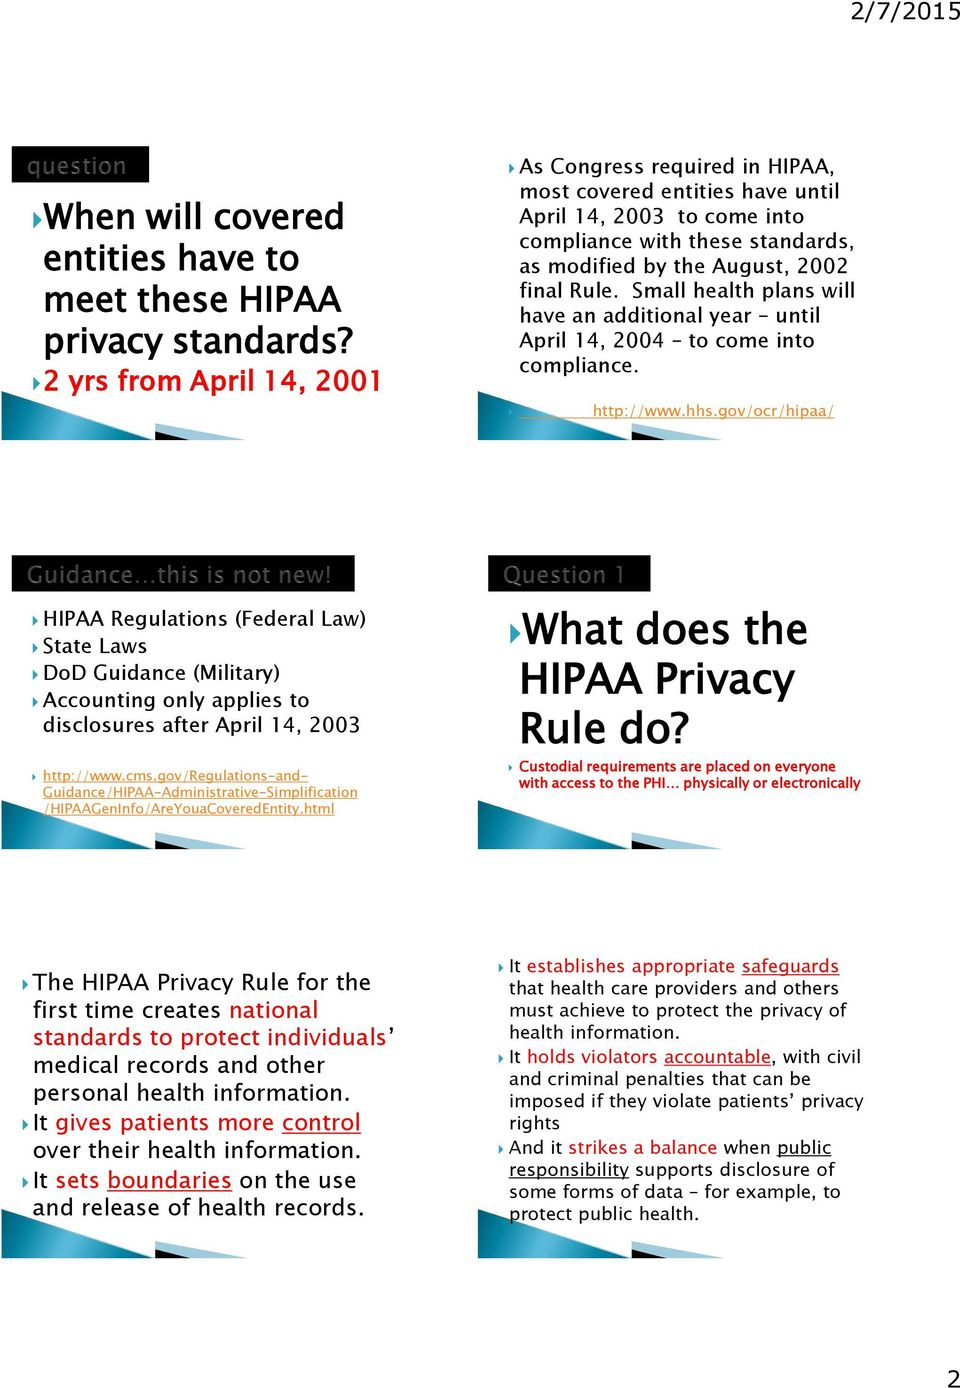 Small health plans will have an additional year until April 14, 2004 to come into compliance. http://www.hhs.